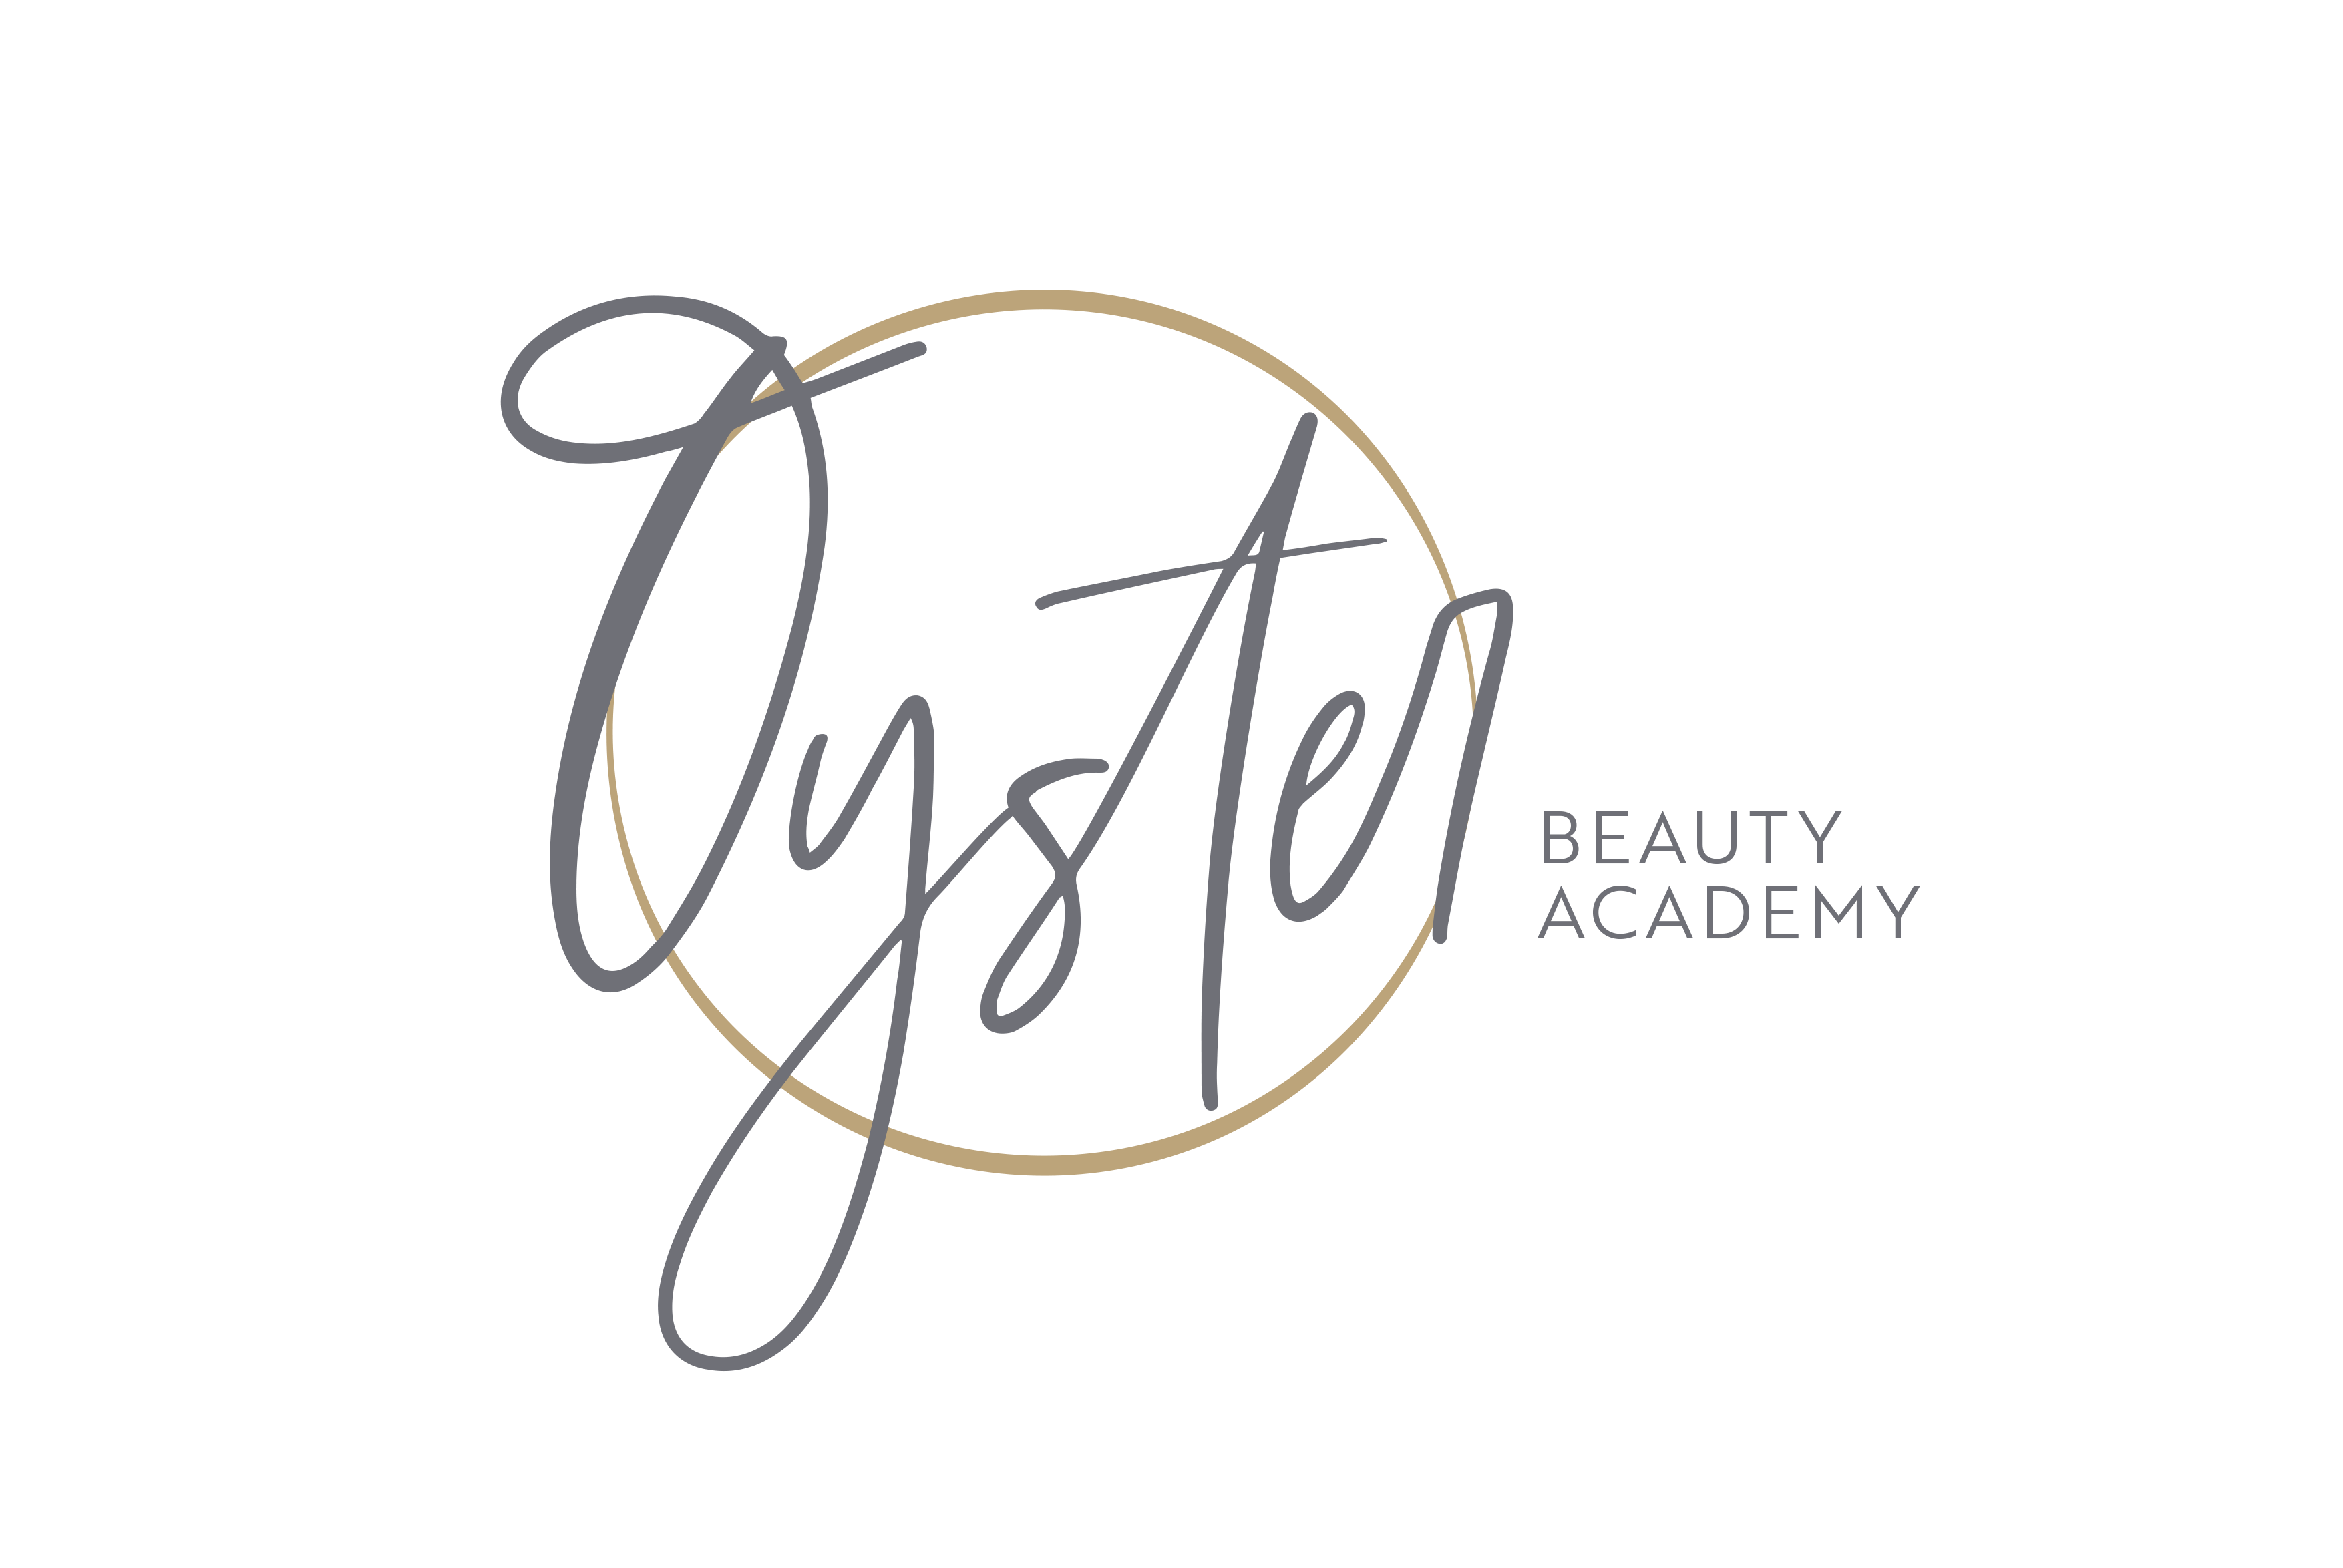 Home - Oyster Beauty Academy